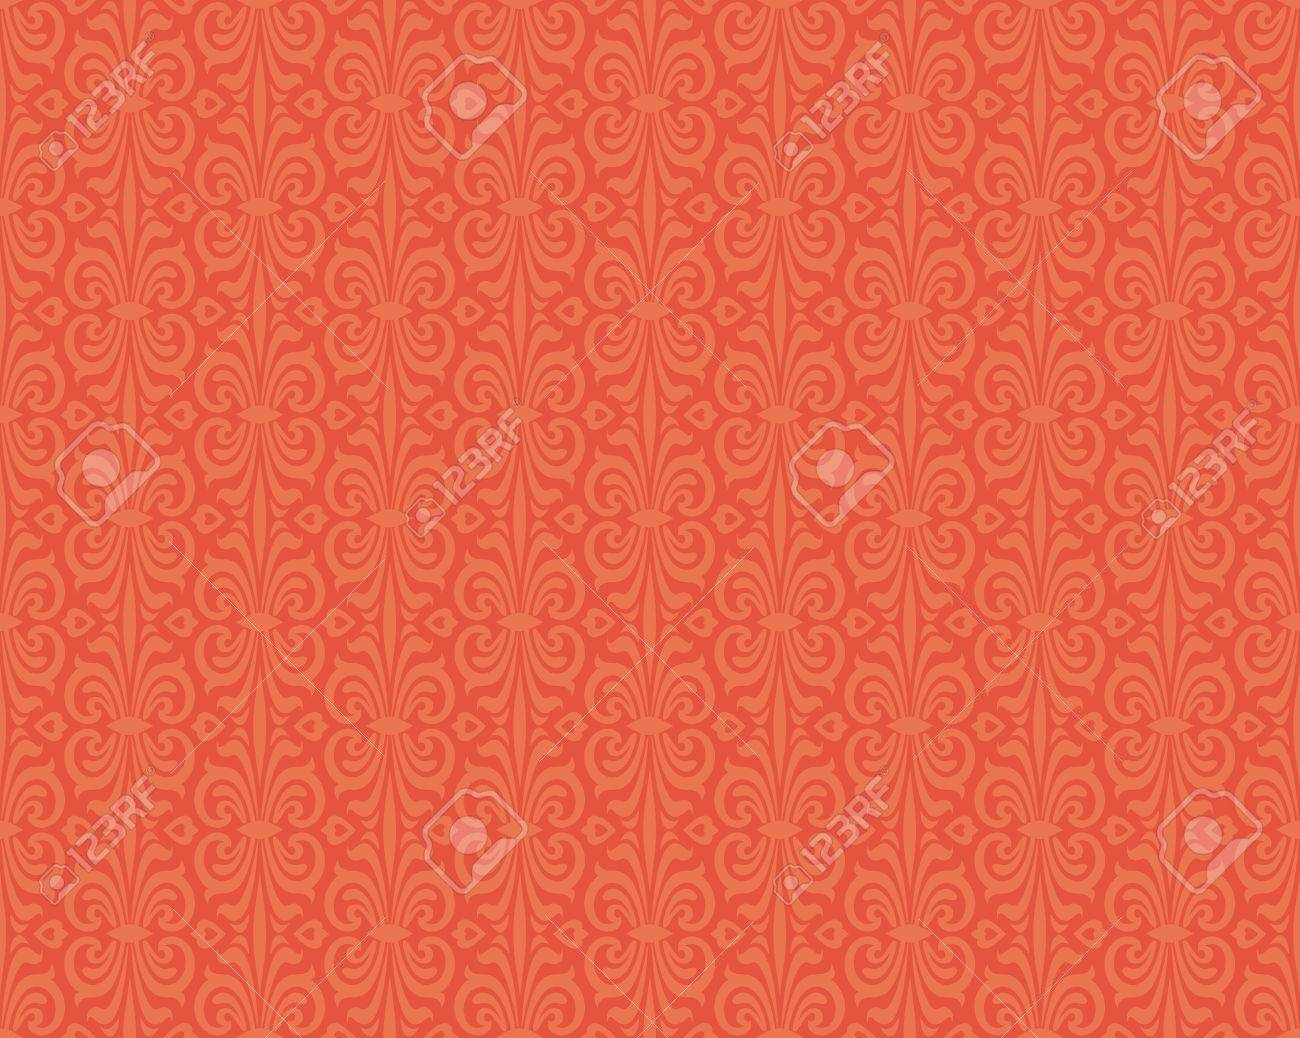 Orange Papier Peint Vintage Conception De Motif De Fond Colore De